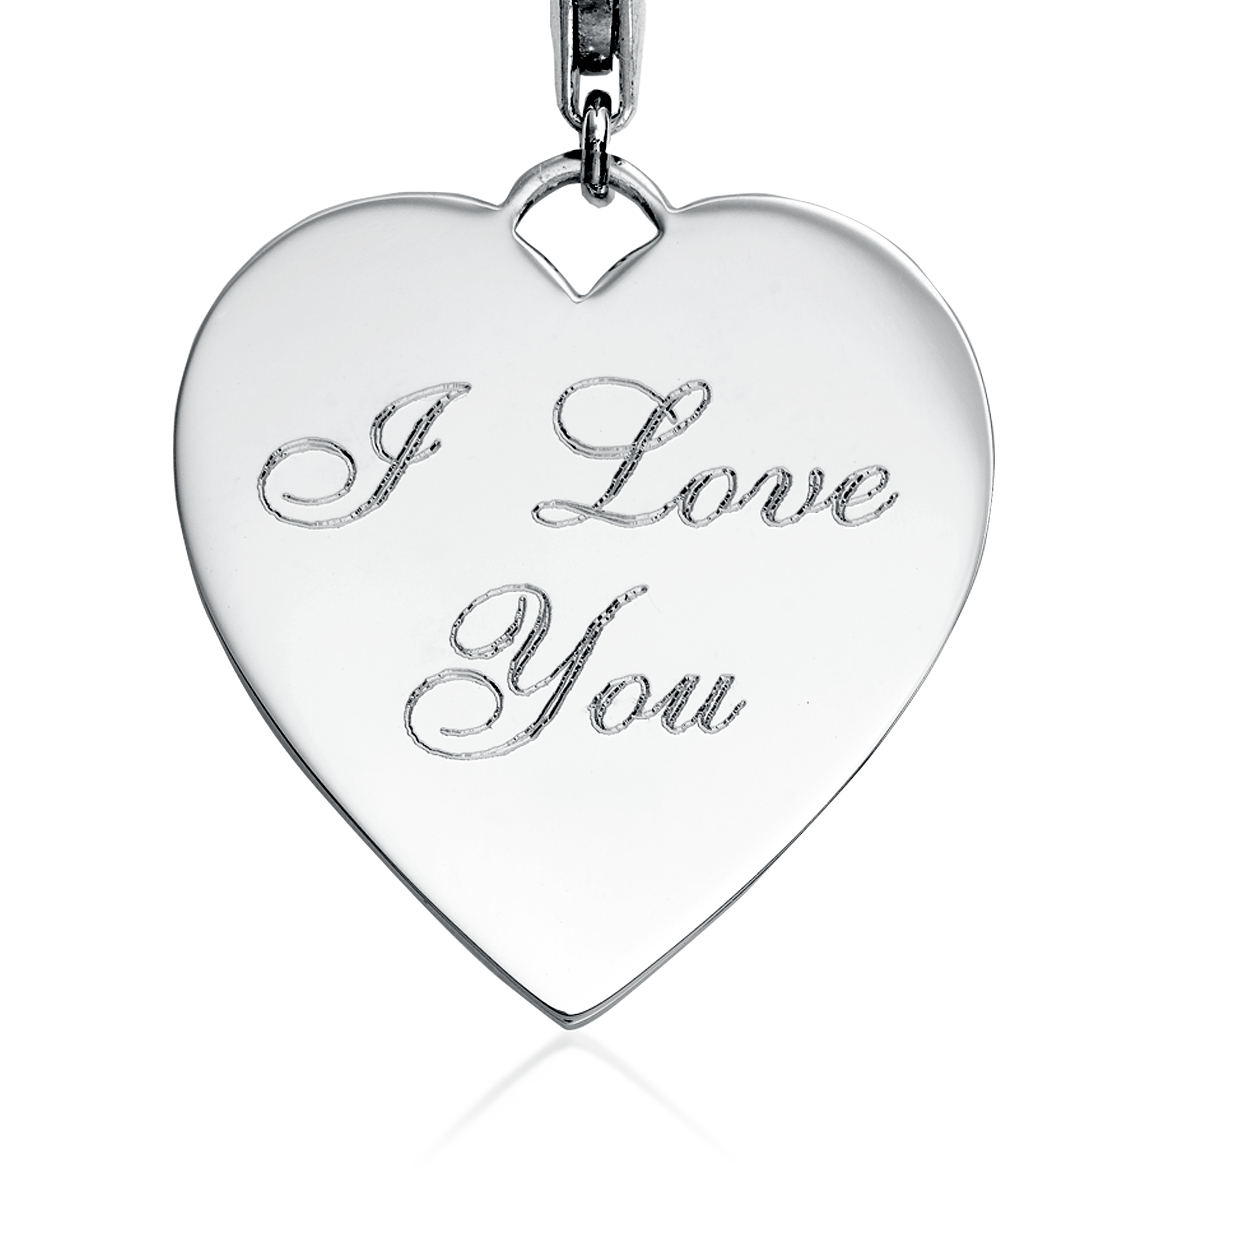 Engravable I Love You Heart Charm in Sterling Silver